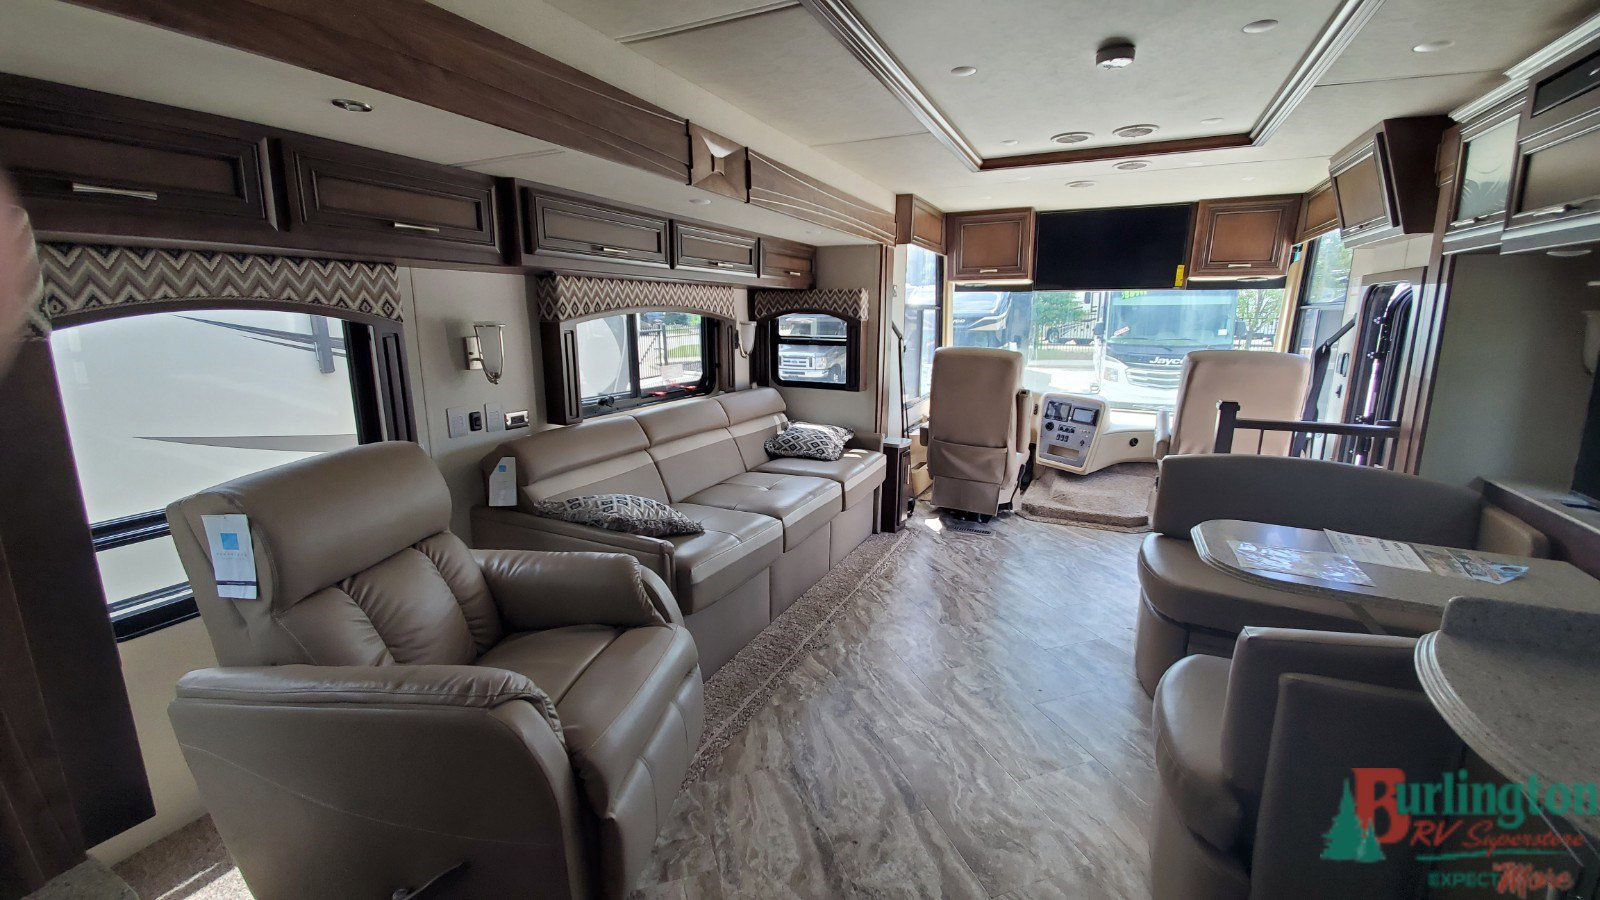 2019 Newmar Canyon Star 3719 Thumbnail